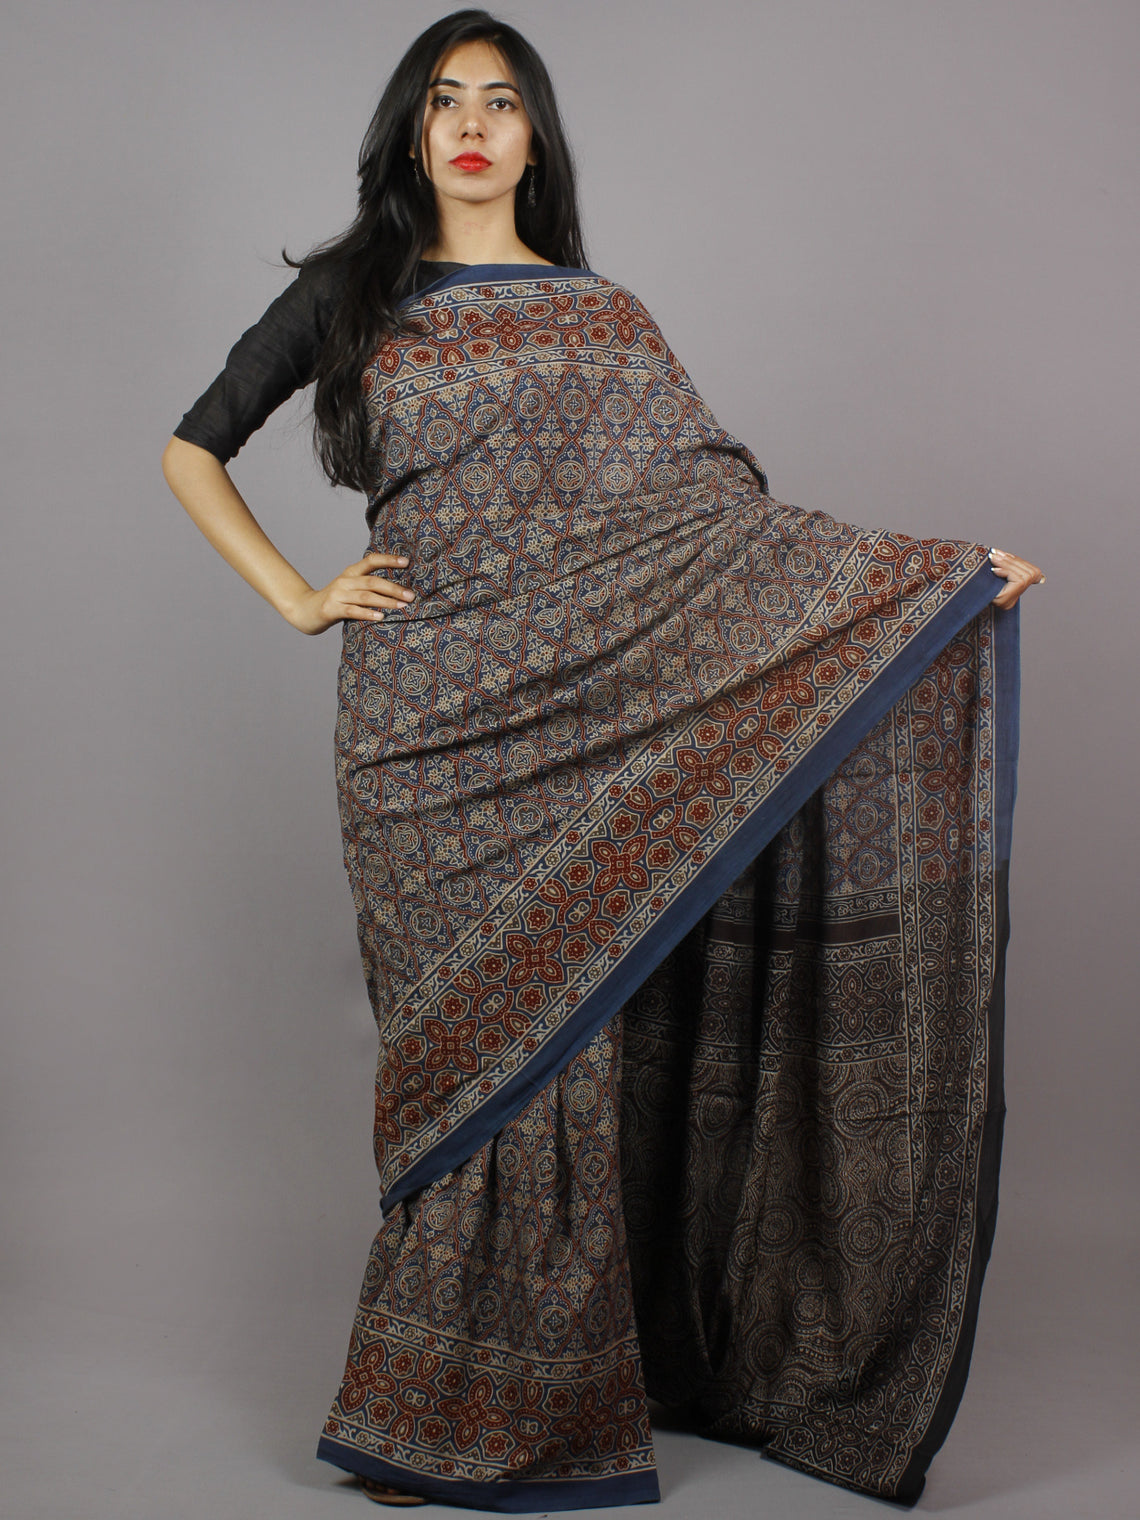 Indigo Maroon Beige Brown Mughal Nakashi Ajrakh Hand Block Printed in Natural Vegetable Colors Cotton Mul Saree - S031701276